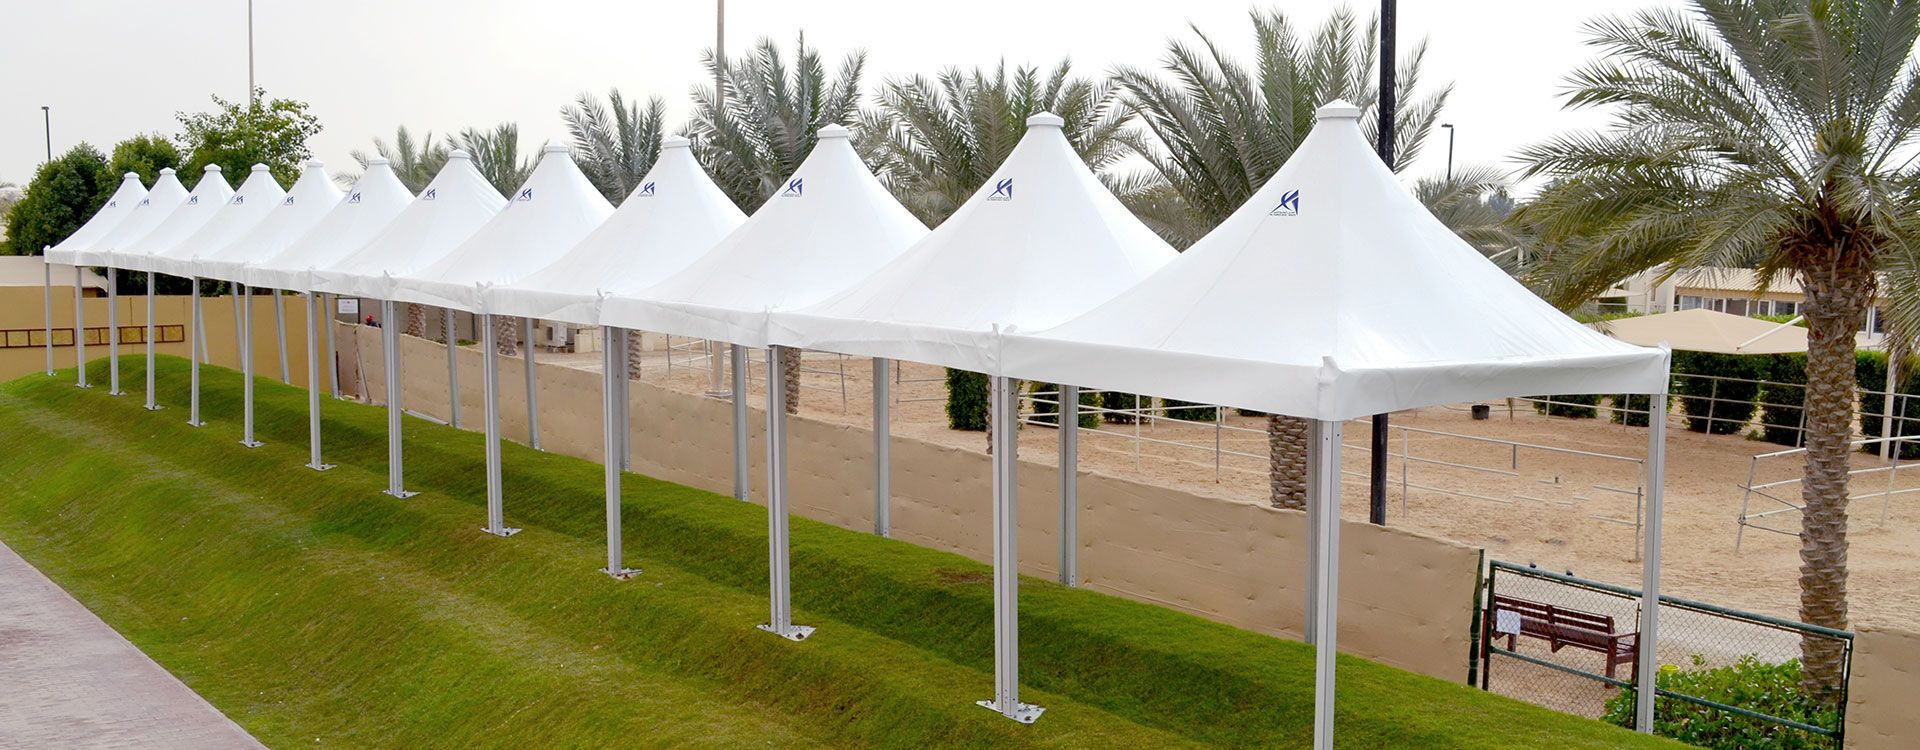 United Arab Emirates Uae Tents Mobile & Pin by Al Fares International Tents on Tents for rental and sale ...